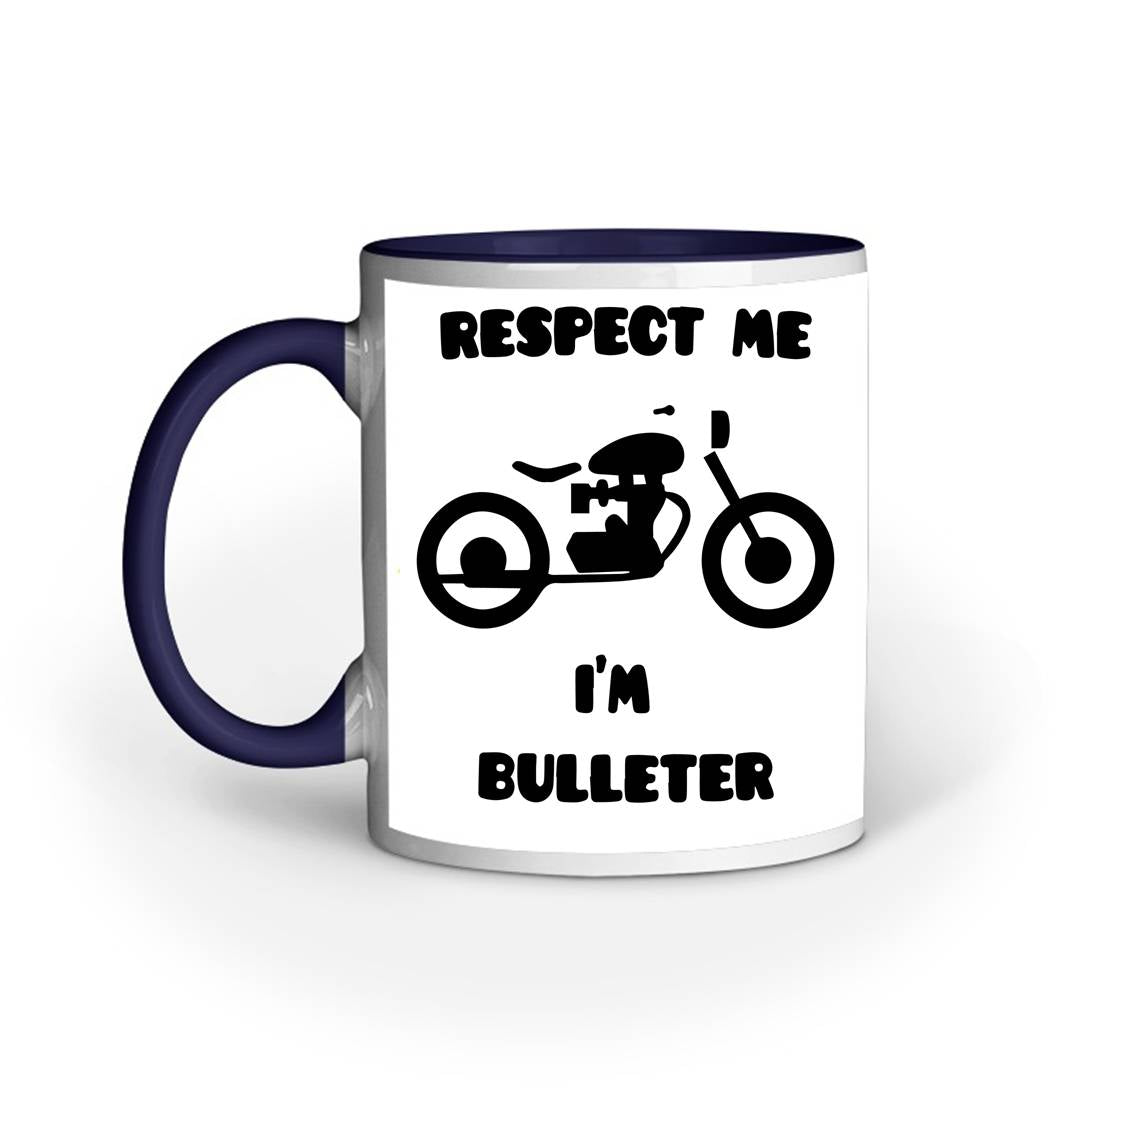 RESPECT BULLETER COFFEE MUG